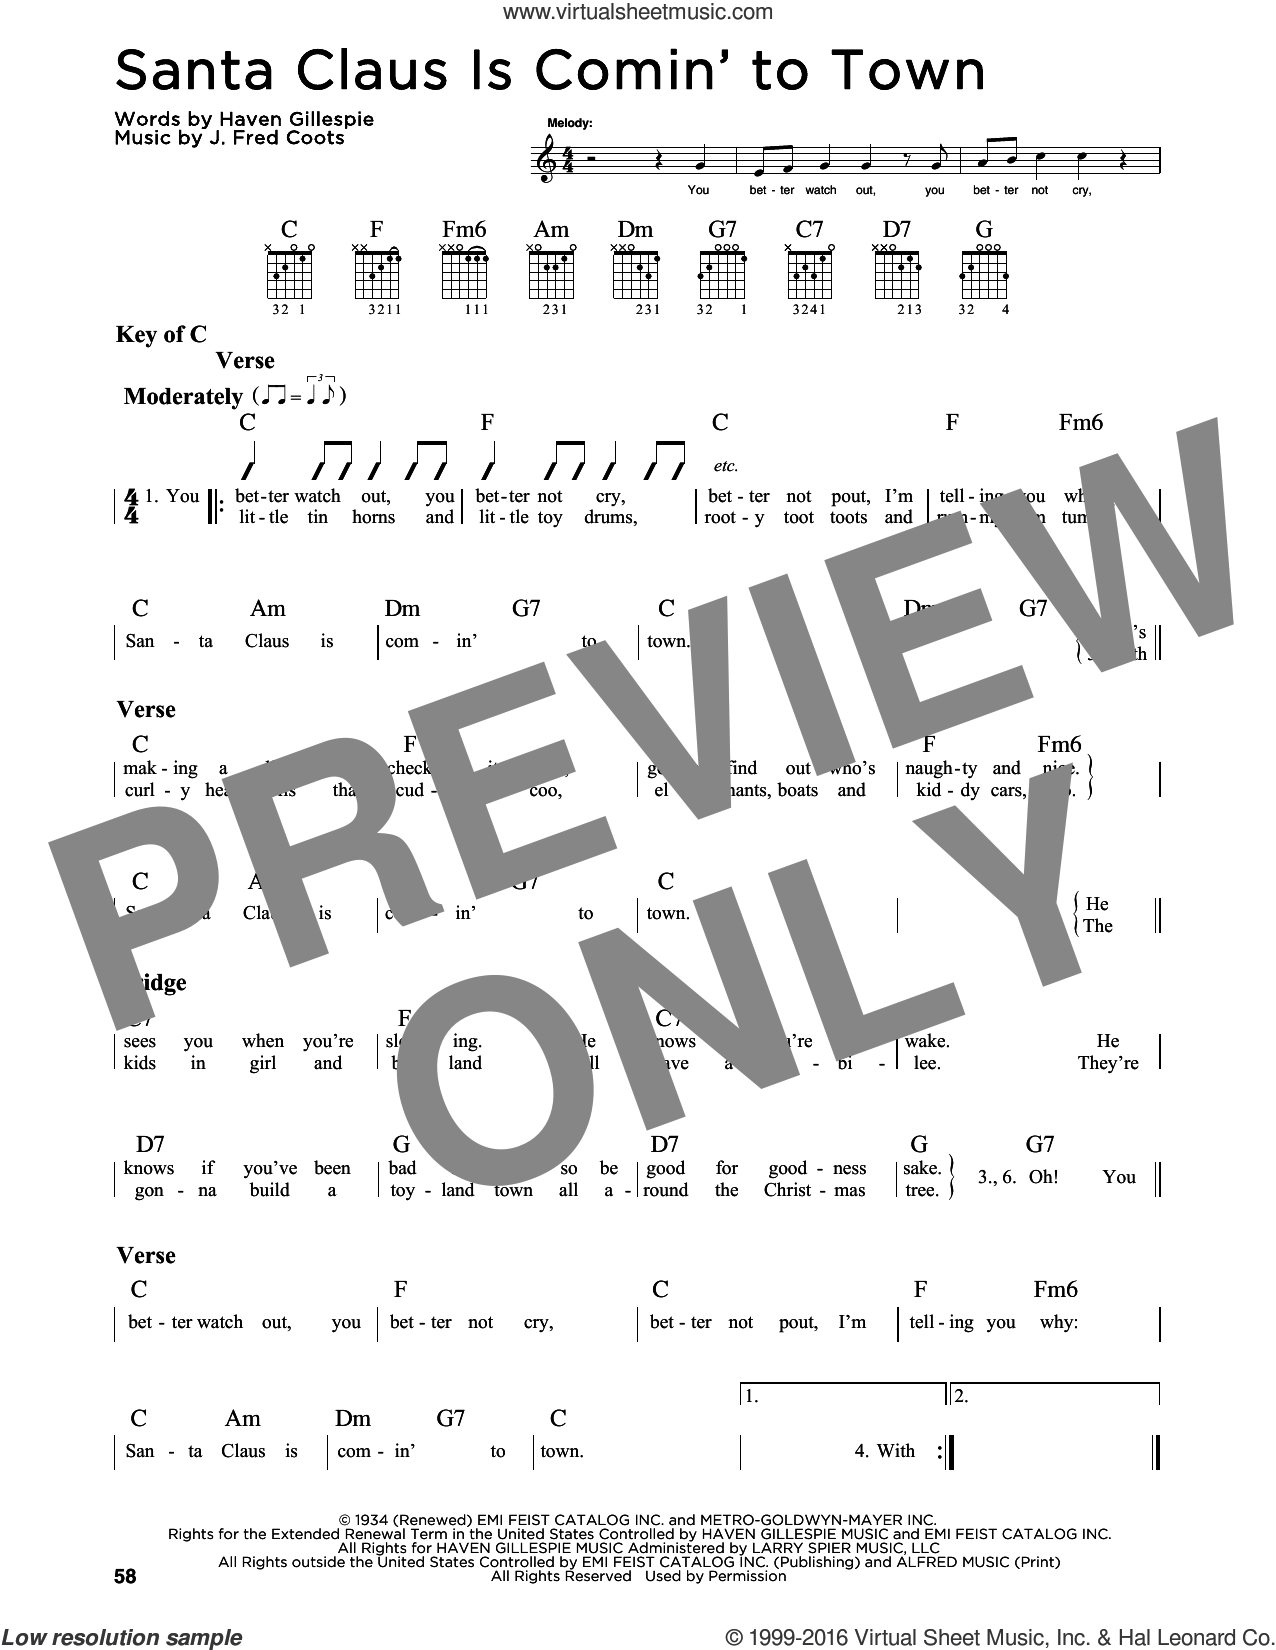 Santa Claus Is Comin' To Town sheet music for guitar solo (lead sheet) by J. Fred Coots and Haven Gillespie, intermediate guitar (lead sheet). Score Image Preview.